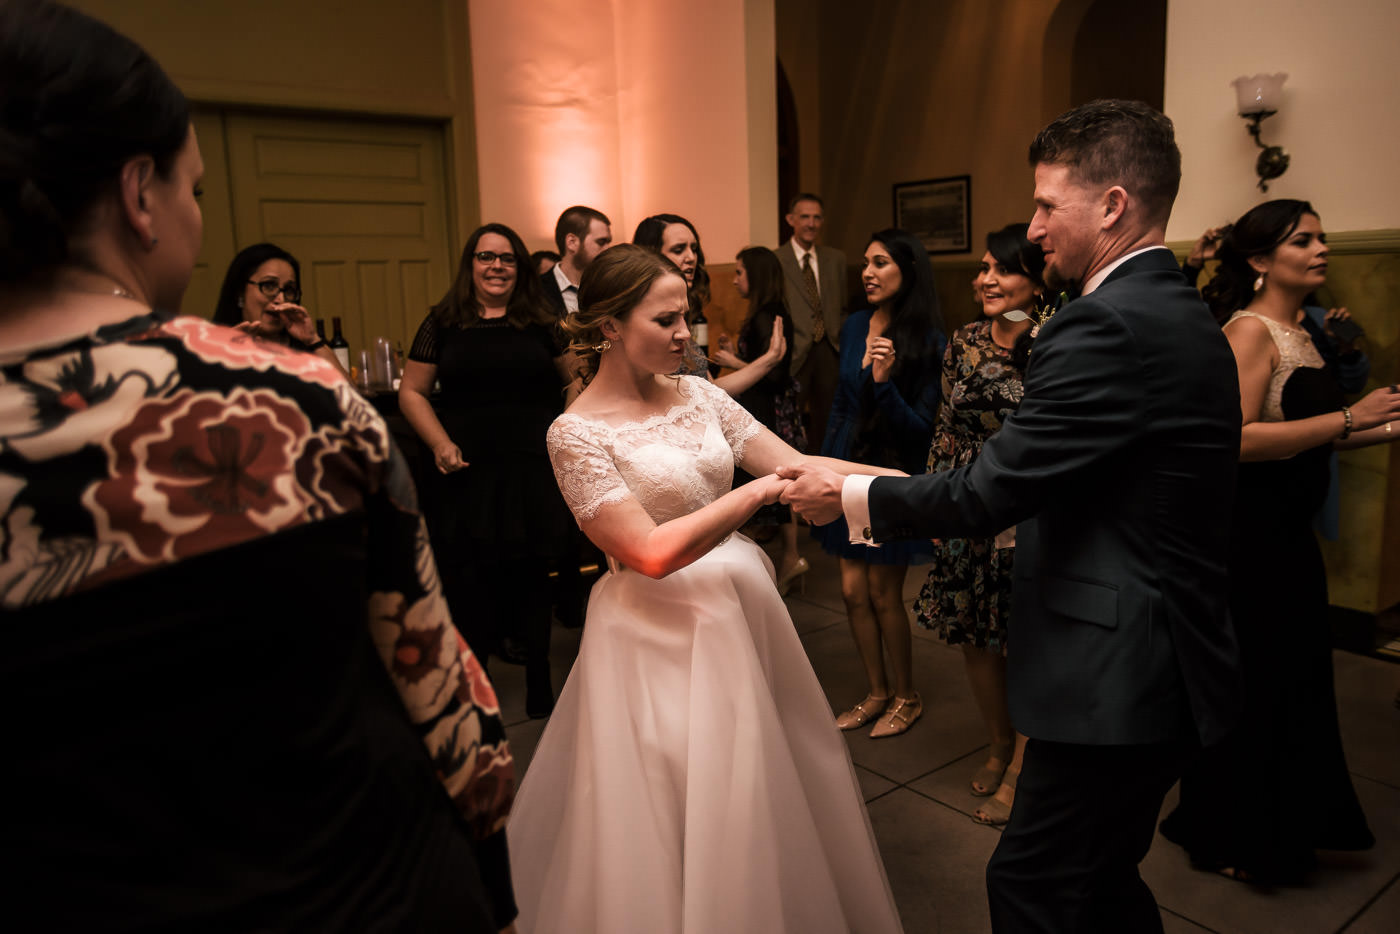 Bride and groom tear up the dance floor with their guests.